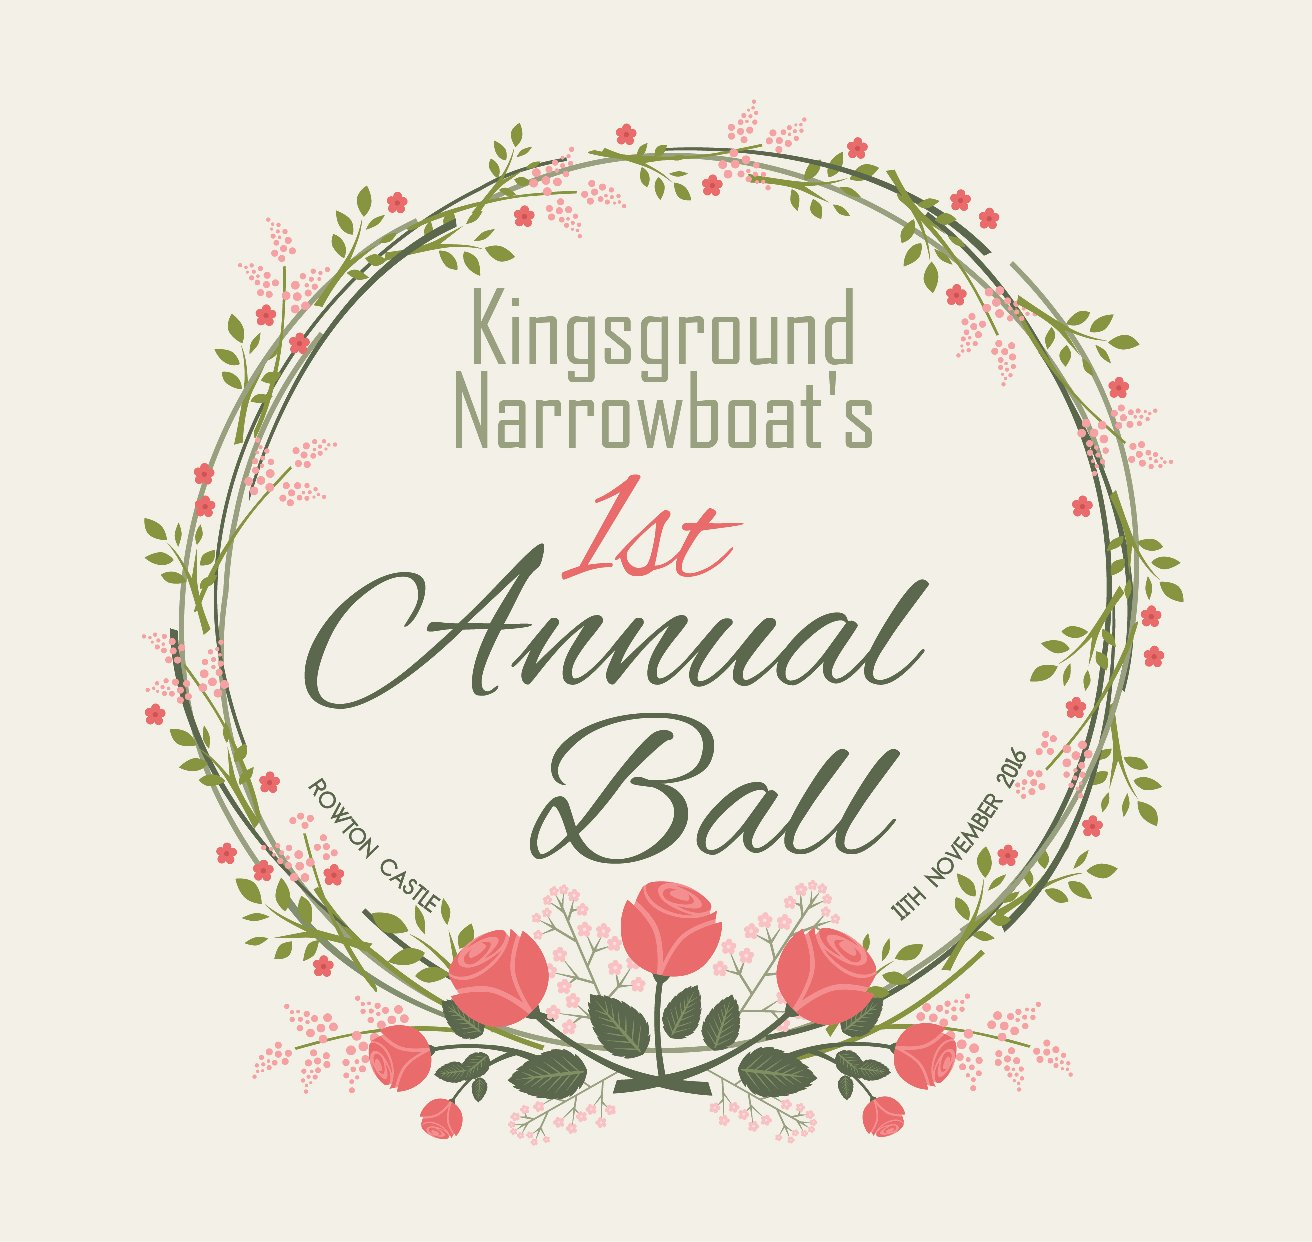 Kingsground Narrowboats Ball